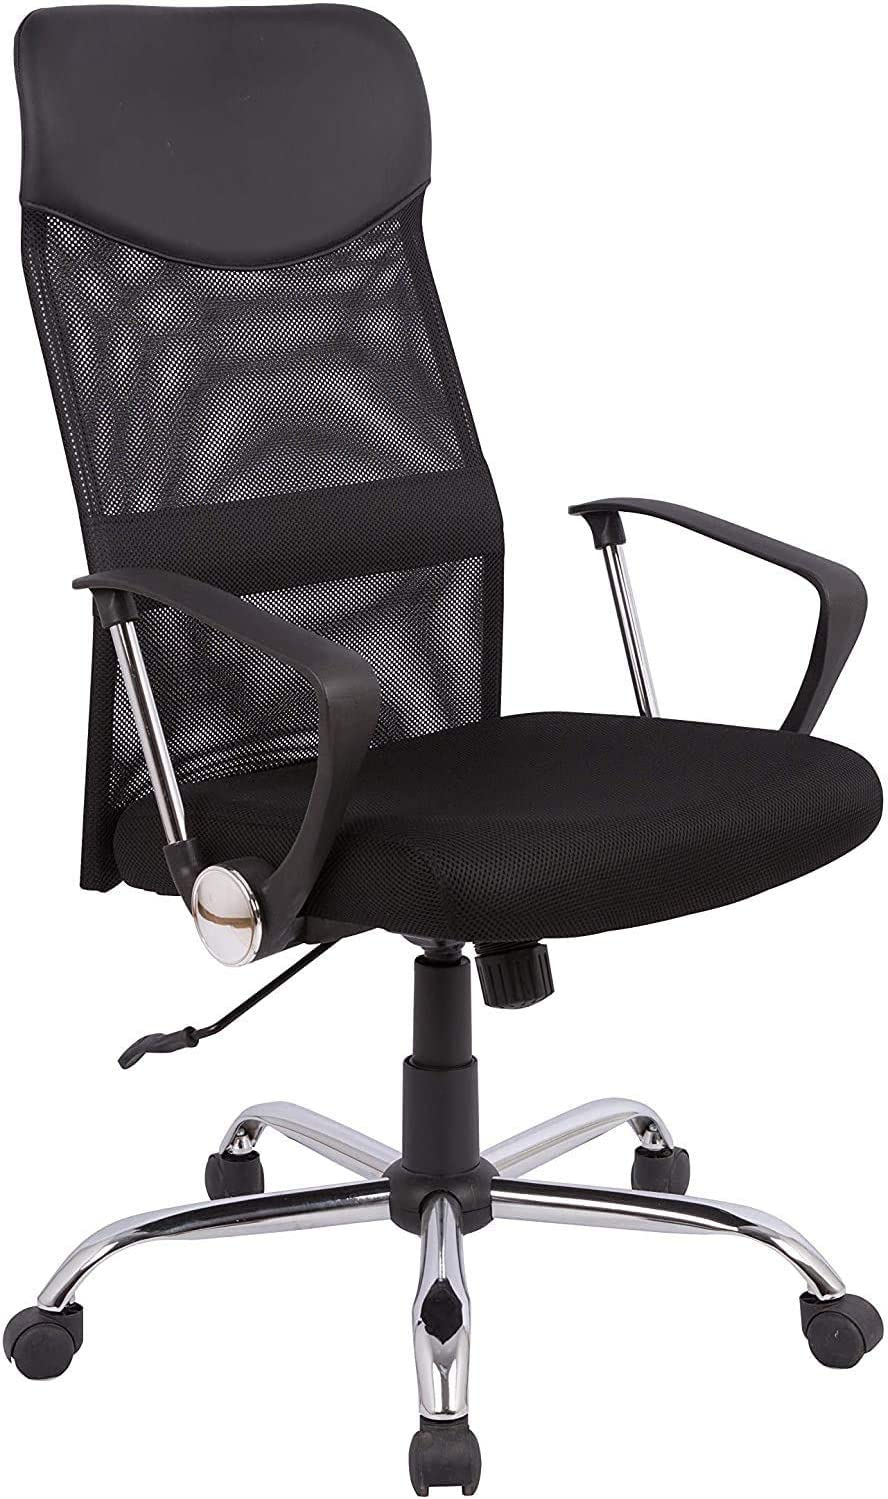 Ergonomic Mesh Office Chair, High Back Desk Chair, Office Swivel Chair with Adjustable Height, Lumbar Support and PU Wheels, Swivel Computer Task Chair